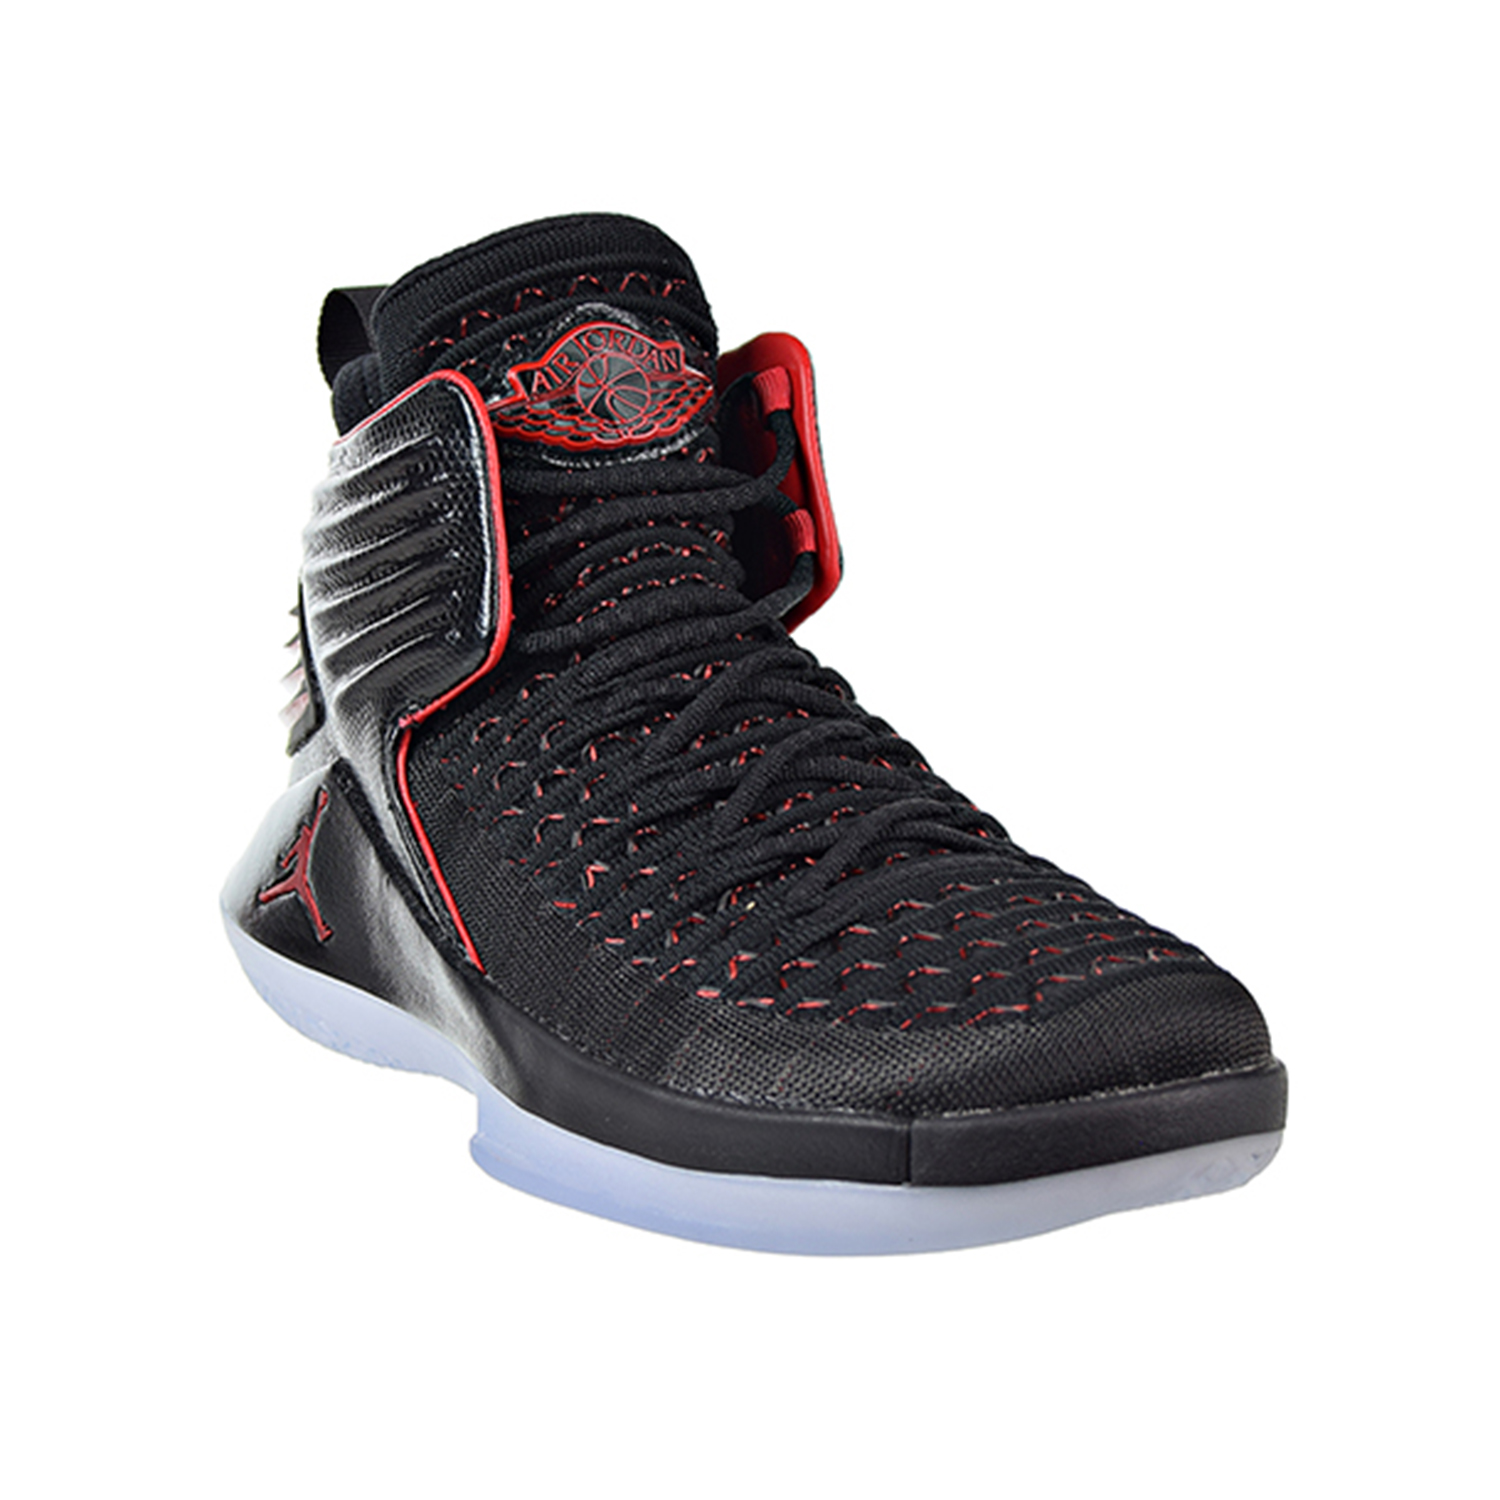 low priced e6702 1c6d2 Air Jordan XXXII 32 Big Kids  Shoes Black University Red aa1254-001